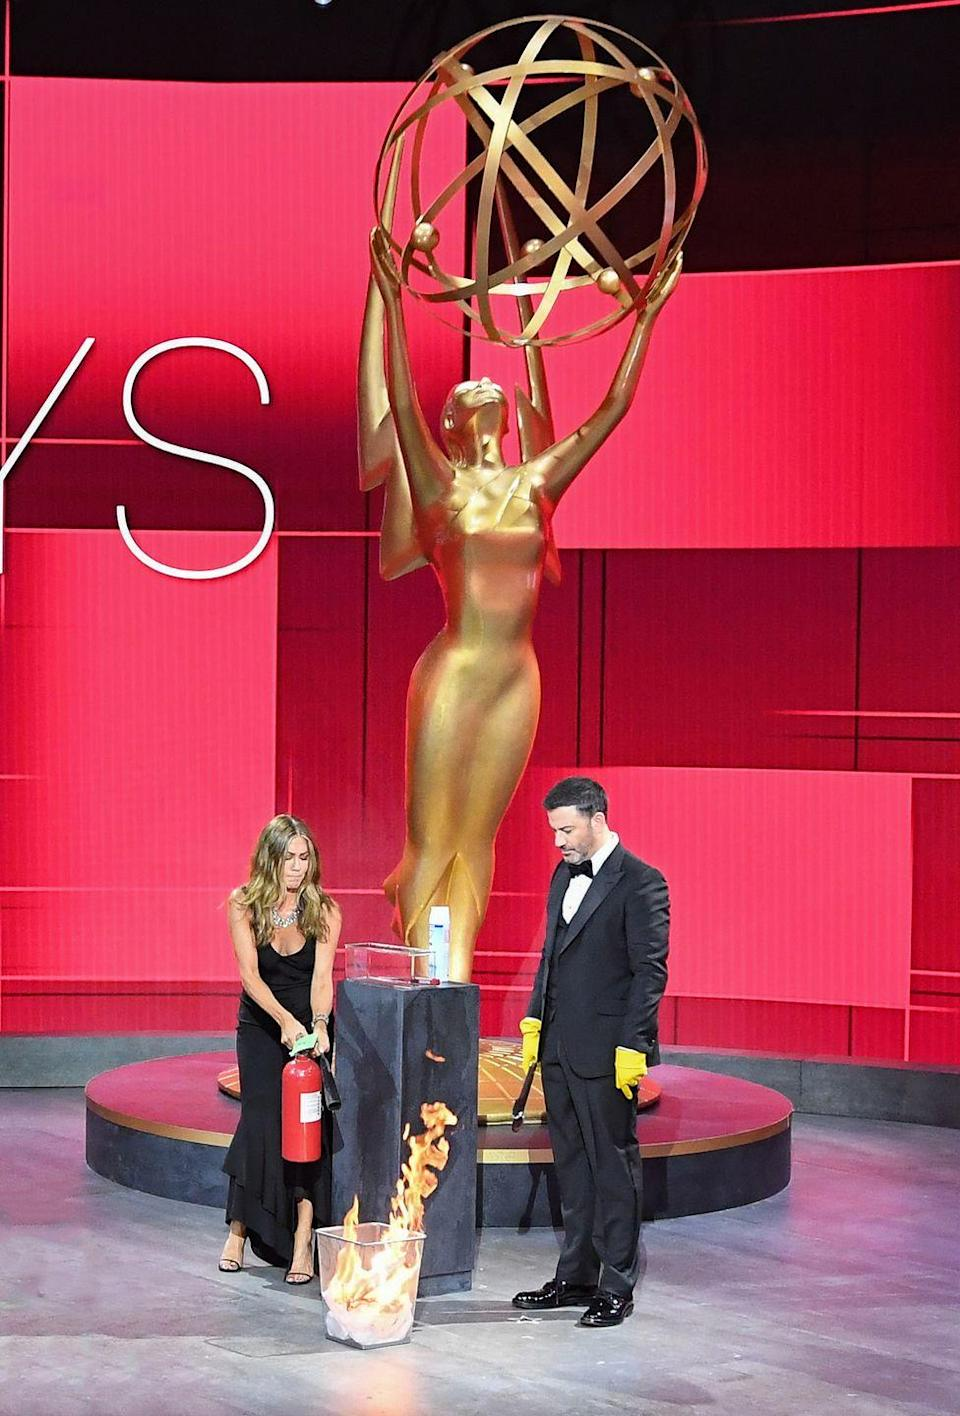 """<p>During a bit, Emmys' host Jimmy Kimmel started a fire that <a href=""""https://www.marieclaire.com/culture/a34089878/jennifer-aniston-emmys-little-black-dress/"""" rel=""""nofollow noopener"""" target=""""_blank"""" data-ylk=""""slk:presenter and nominee Jennifer Aniston"""" class=""""link rapid-noclick-resp"""">presenter and nominee Jennifer Aniston</a> had to help put out—only the fire didn't want to go out so easily, forcing the duo to battle some unexpectedly large flames. </p>"""